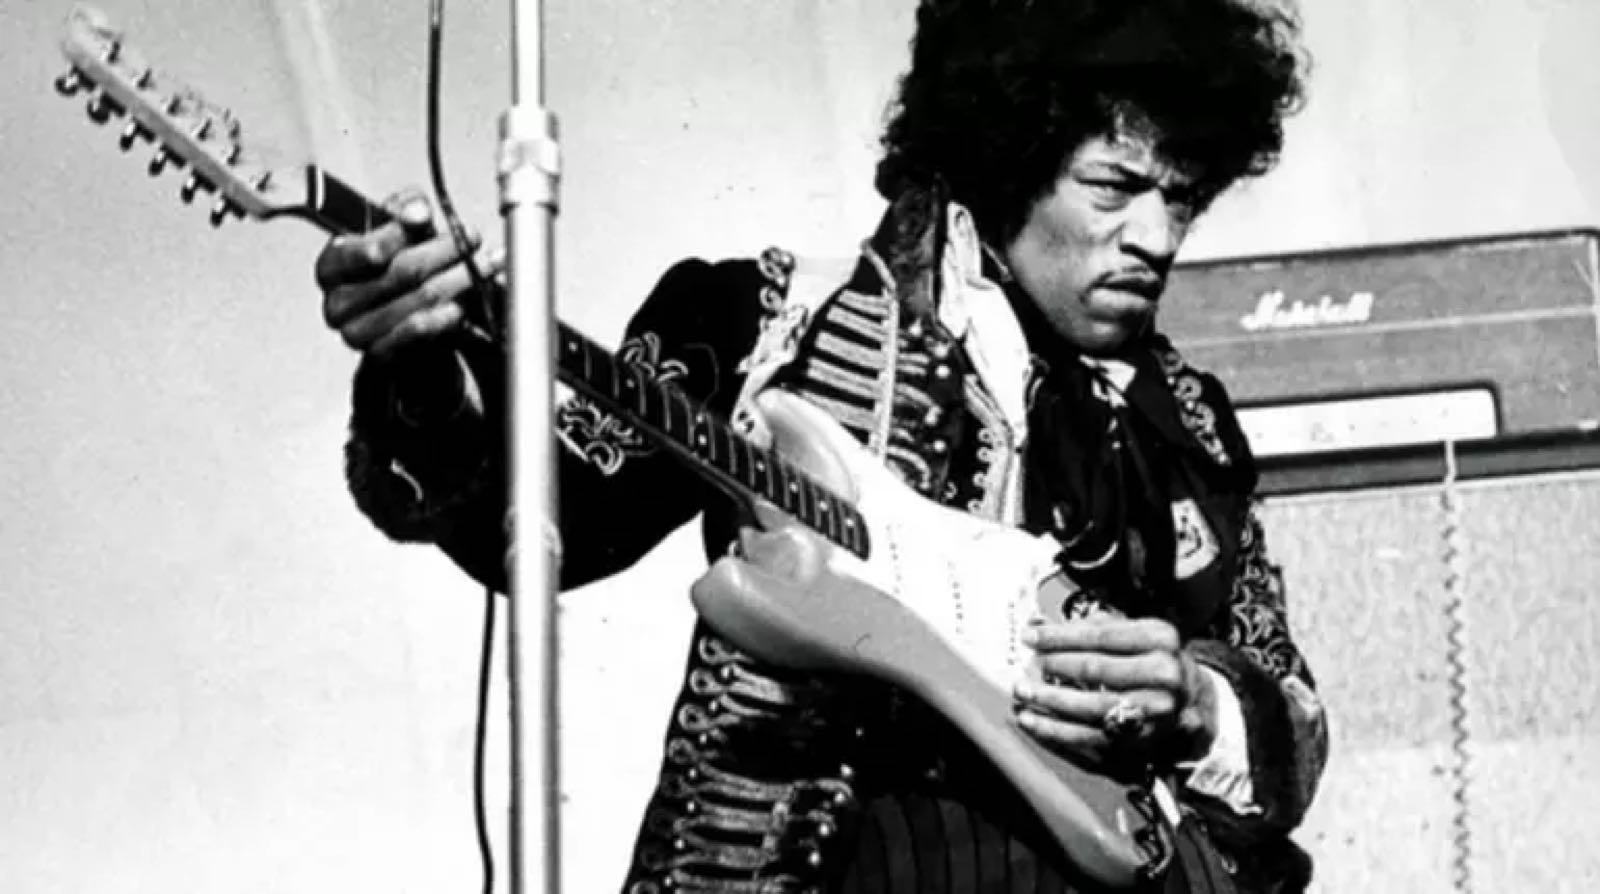 Jimi Hendrix was an American rock guitarist, singer, and songwriter. His mainstream career lasted only four years.